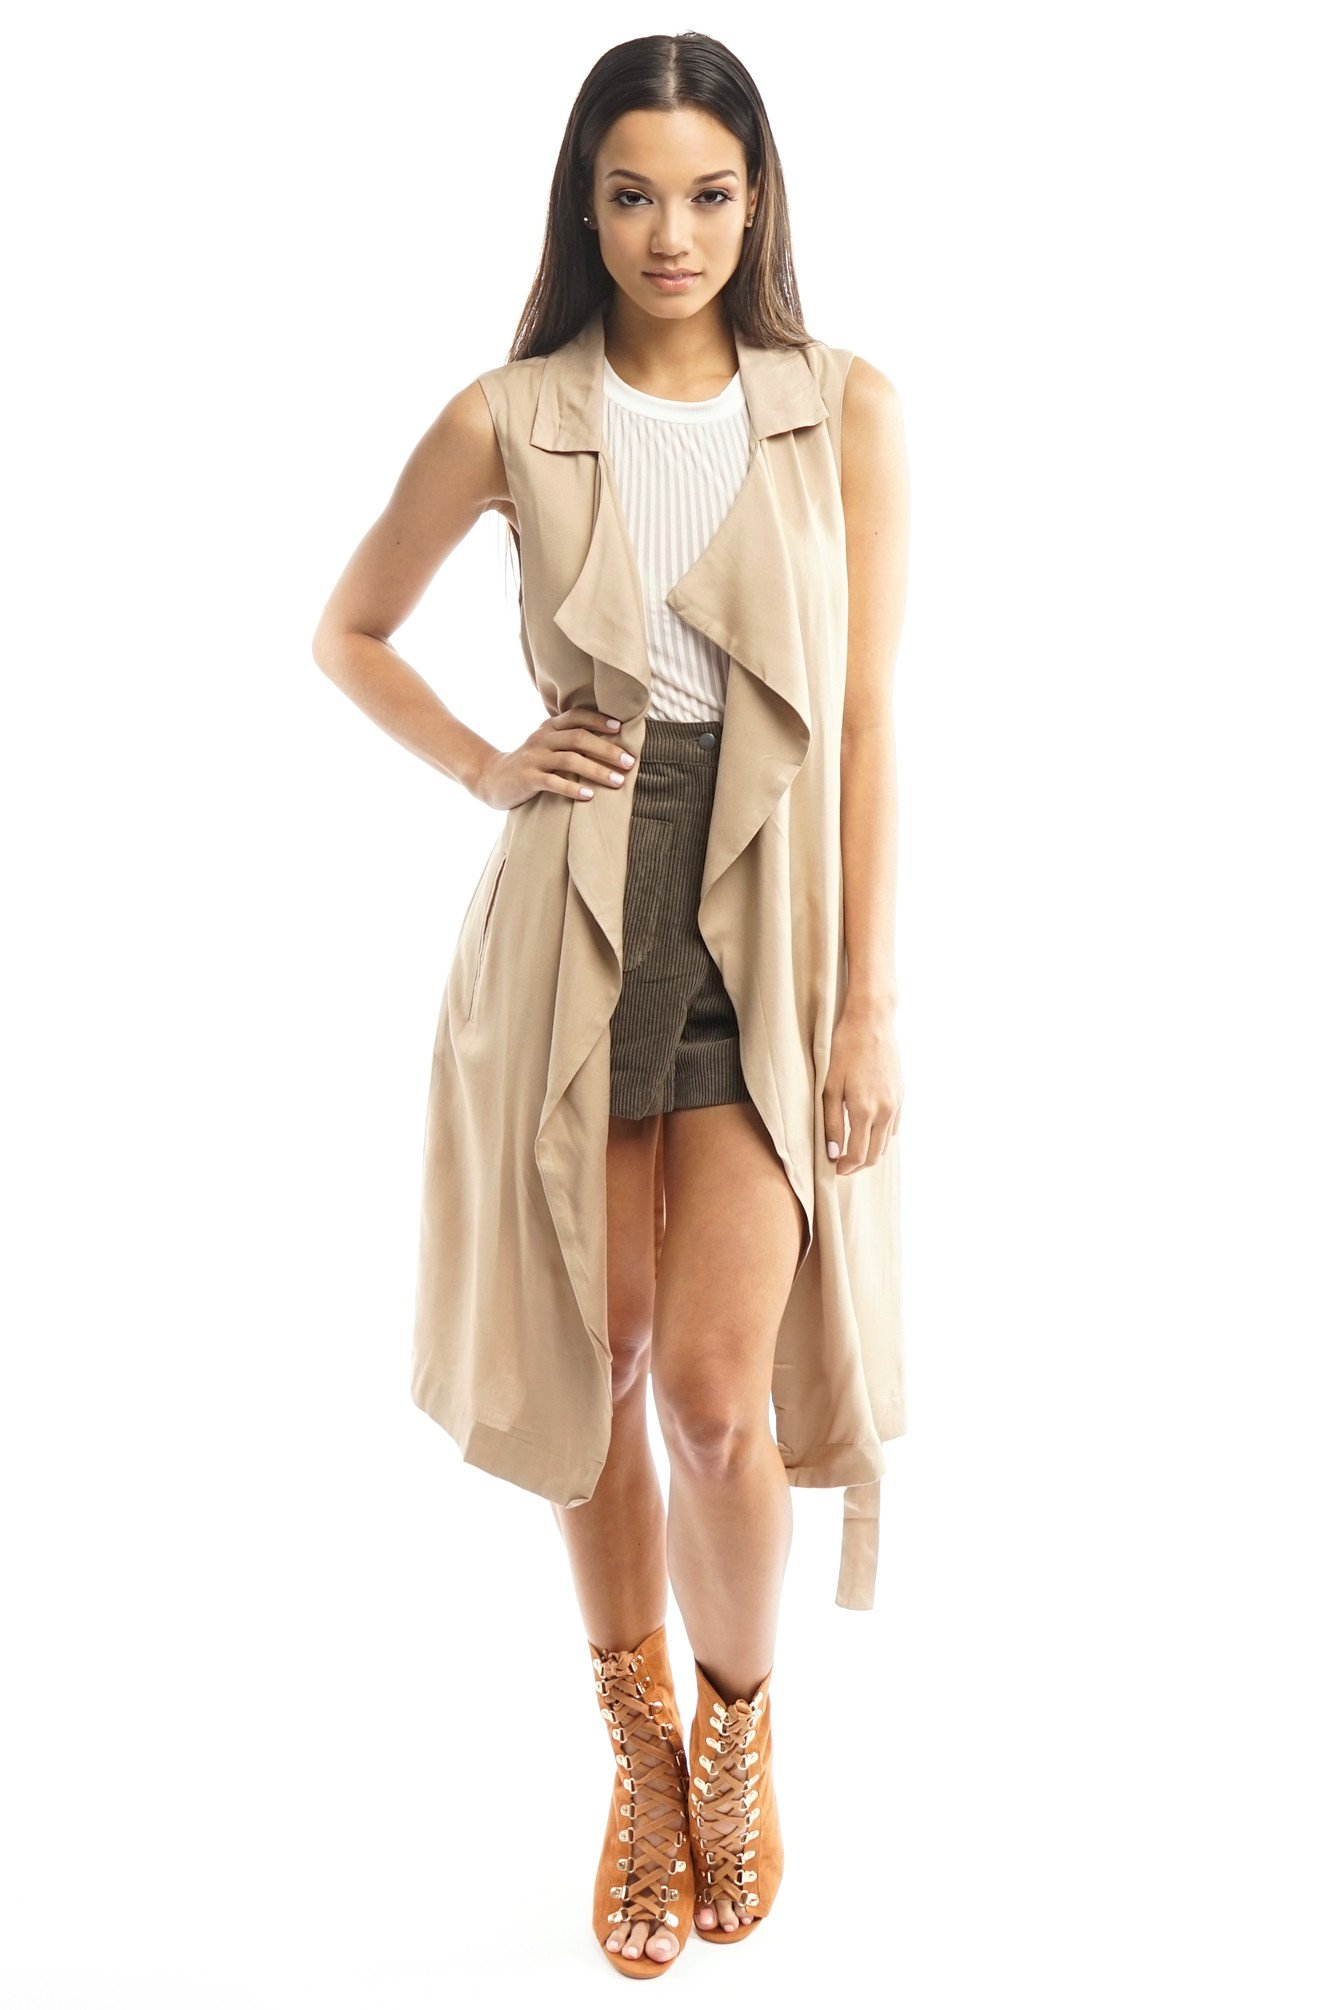 Forever 21 Trench Coat   Pink Waterfall Jacket   Sleeveless Trench Coat